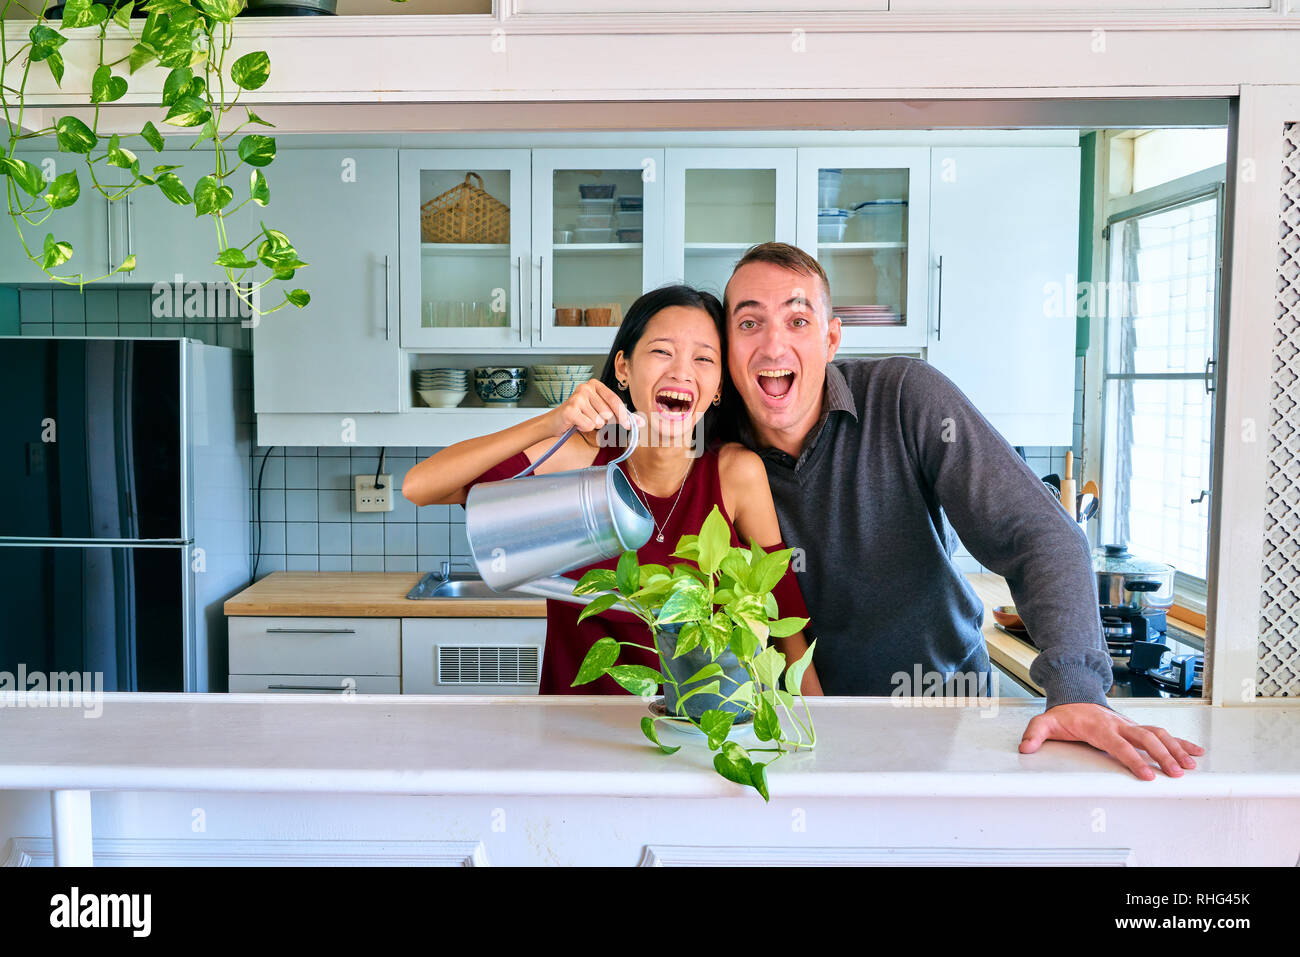 Lovely couple posing - watering plants and laughing each other - Stock Image